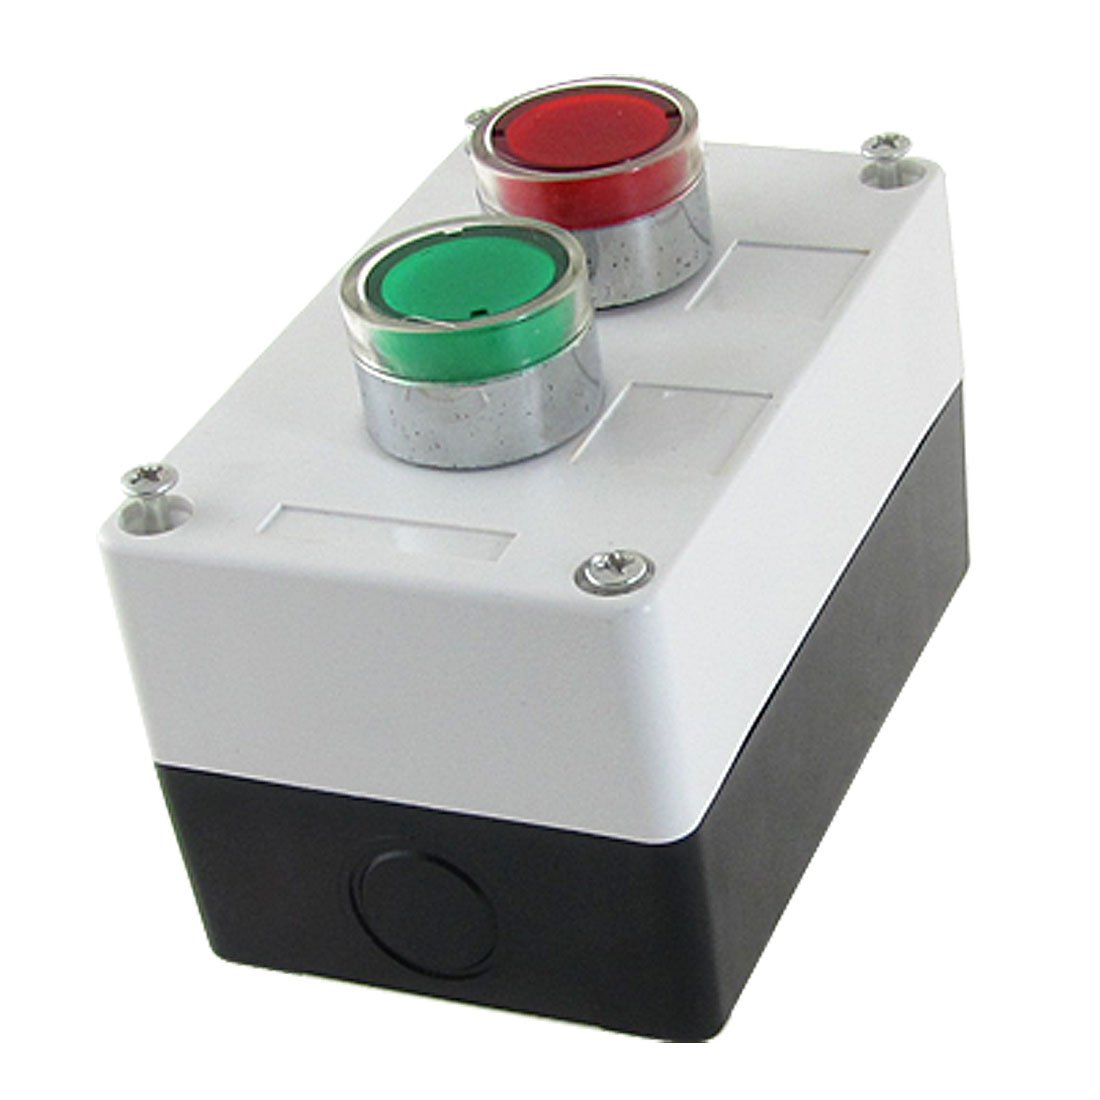 uxcell AC 110V Green Red Illuminated Light N/O NO Momentary Push Button Switch Station